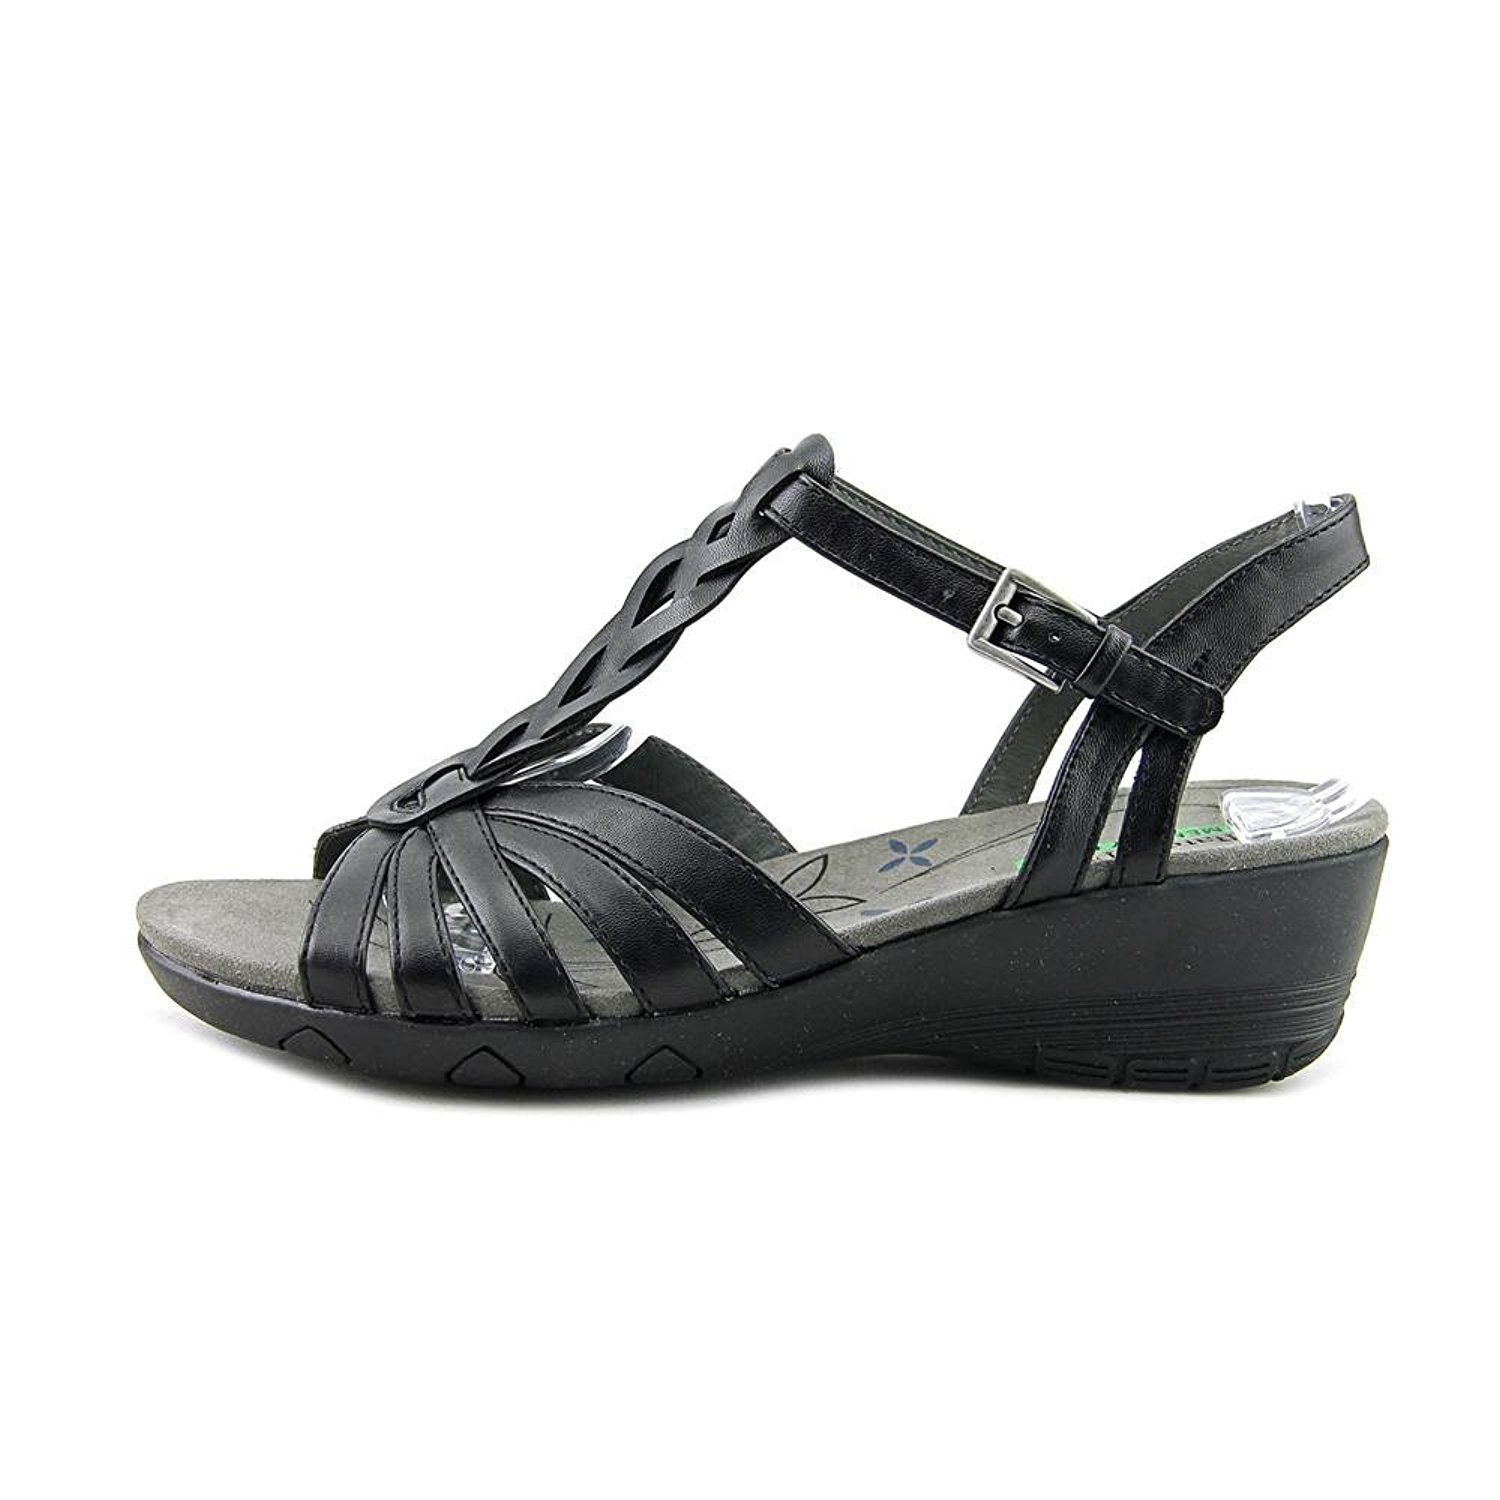 81b675267 Bare Traps Honora Memory Foam Wedge Sandals Black 8 UK